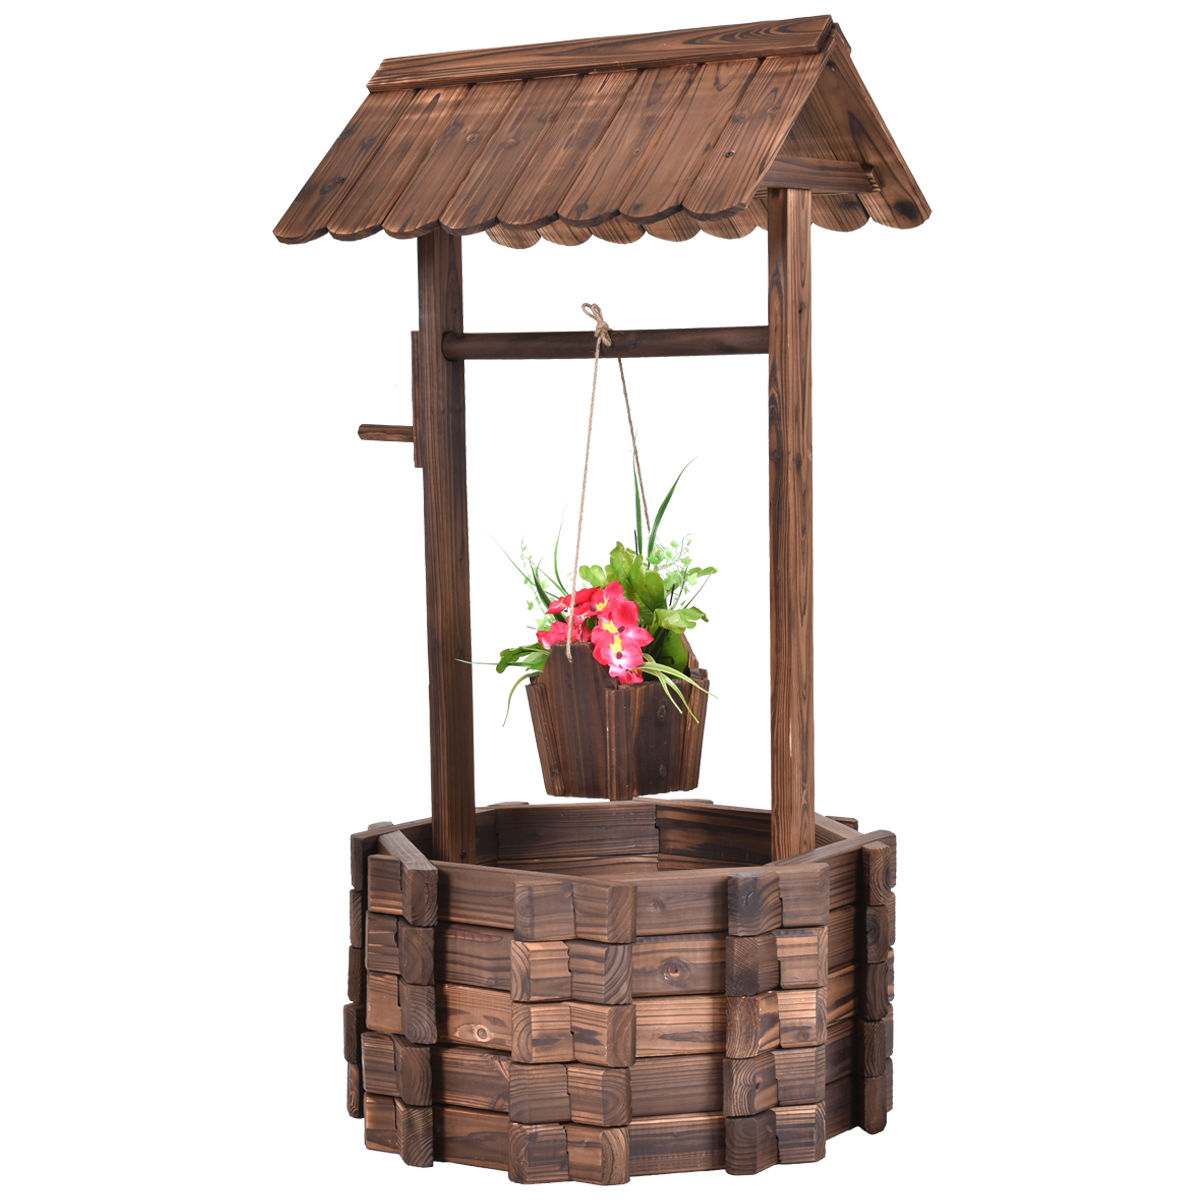 Costway Outdoor Wooden Wishing Well Bucket Flower Plants Planter Patio Garden Home Decor by Costway